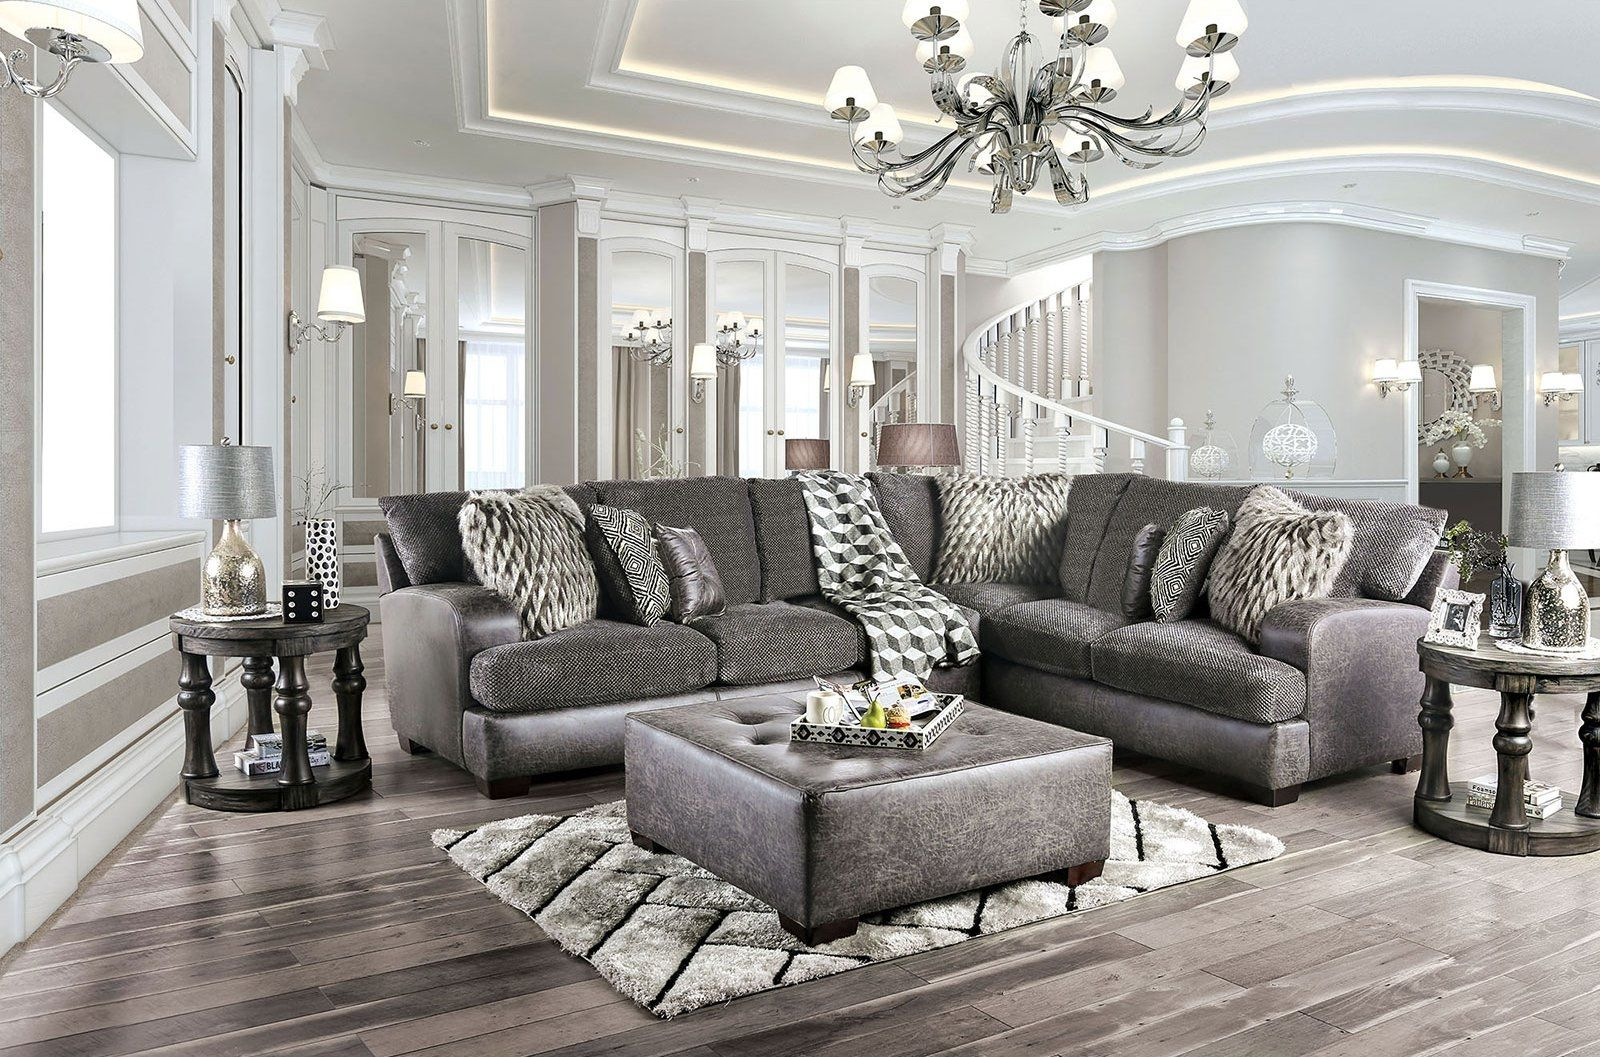 Gellhorn Gray Sectional Sofa Sm5202gy Sect Furniture Of America Sectional Sofas In 2020 Living Room Decor Gray Luxury Living Room Leather Couches Living Room #two #sectionals #in #living #room